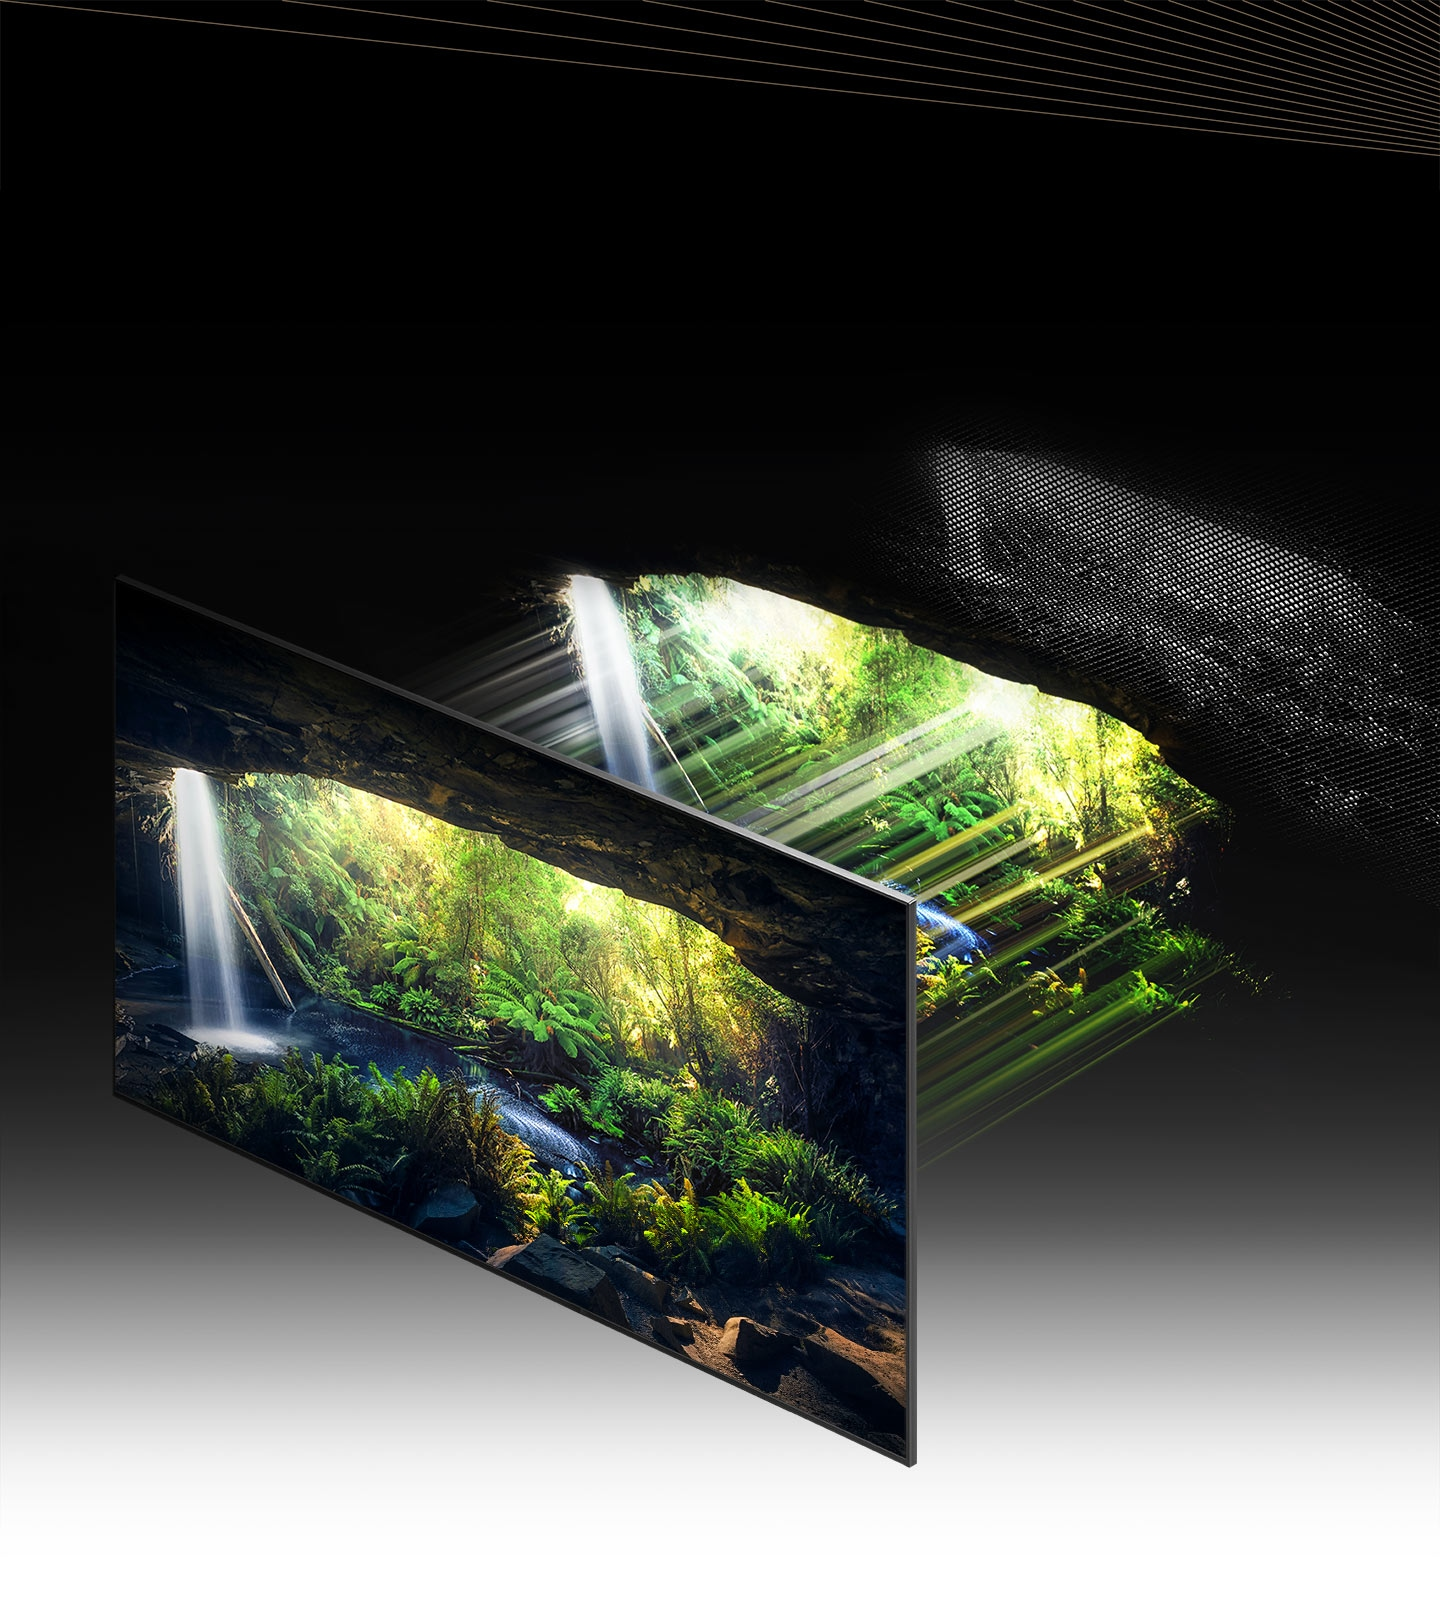 Through the Quantum Mini LED and microlayer, the beautiful forest screen seen from inside a cave is displayed in detail in bright and dark areas, showing very clearly.